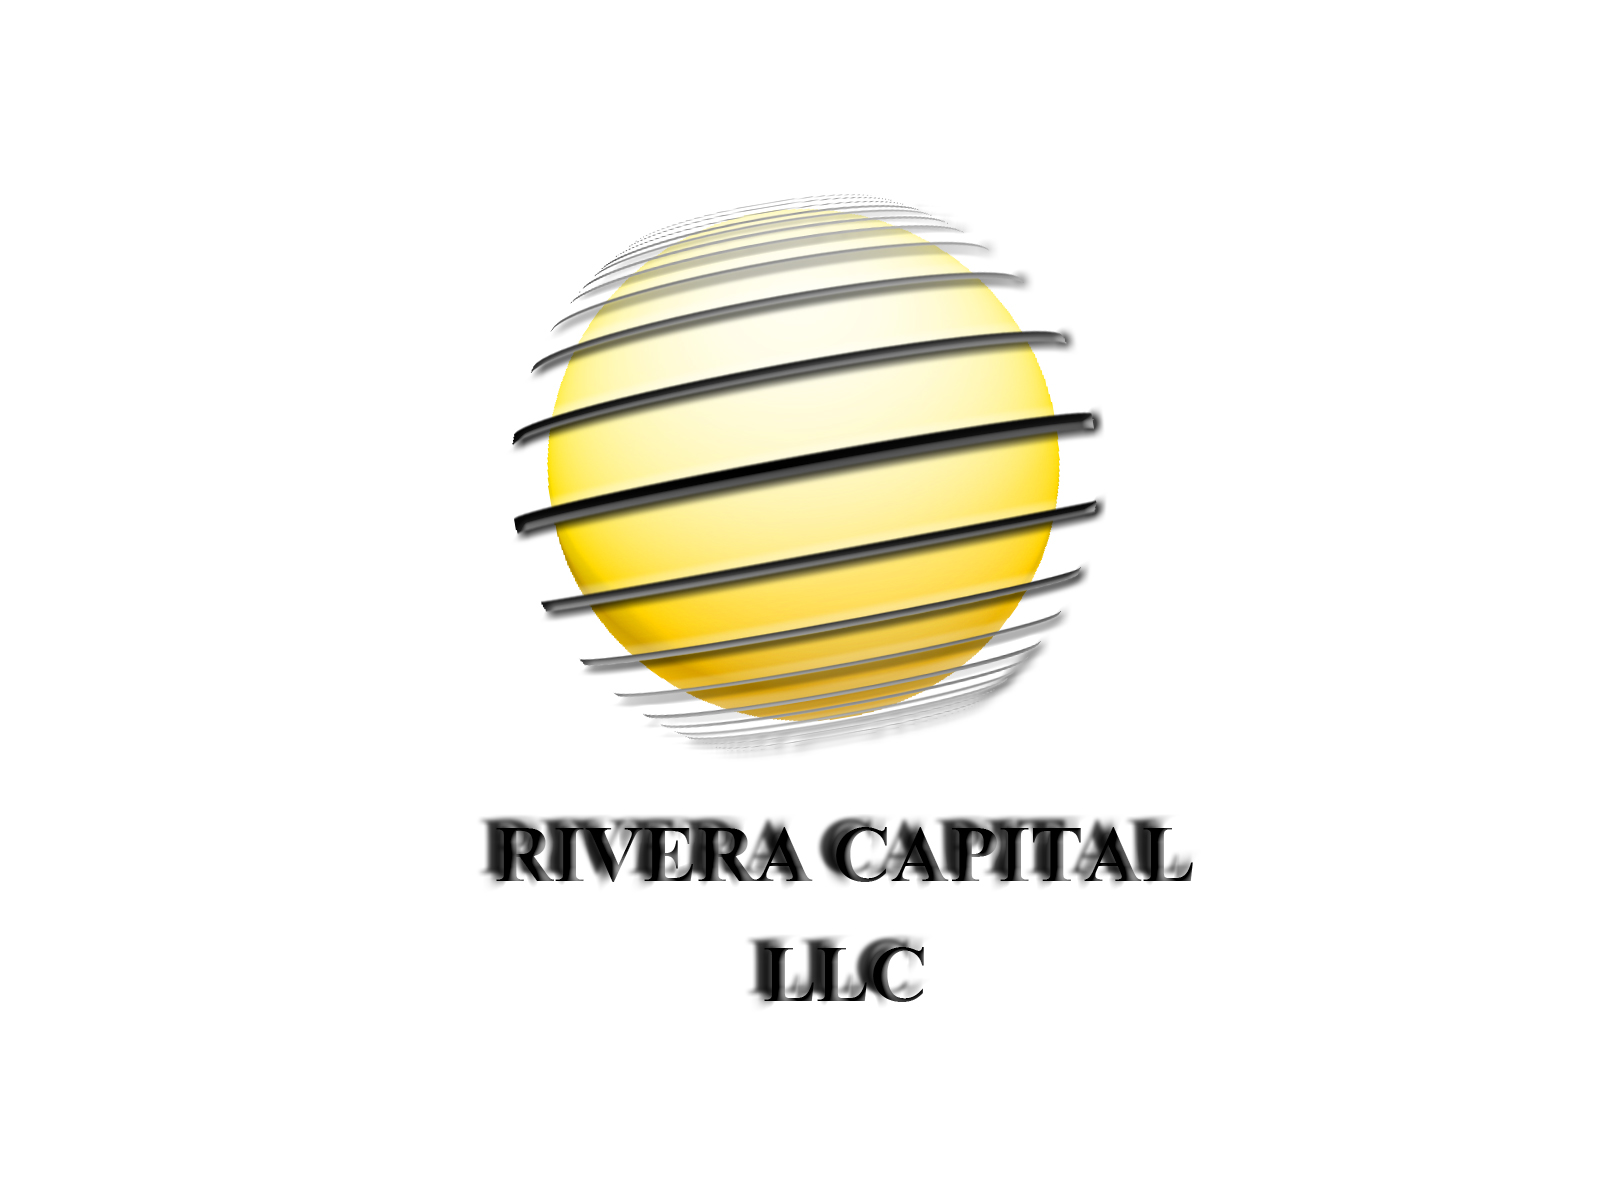 Logo Design by Mythos Designs - Entry No. 60 in the Logo Design Contest Logo Design Needed for Exciting New Company Rivera Capital LLC LLC.